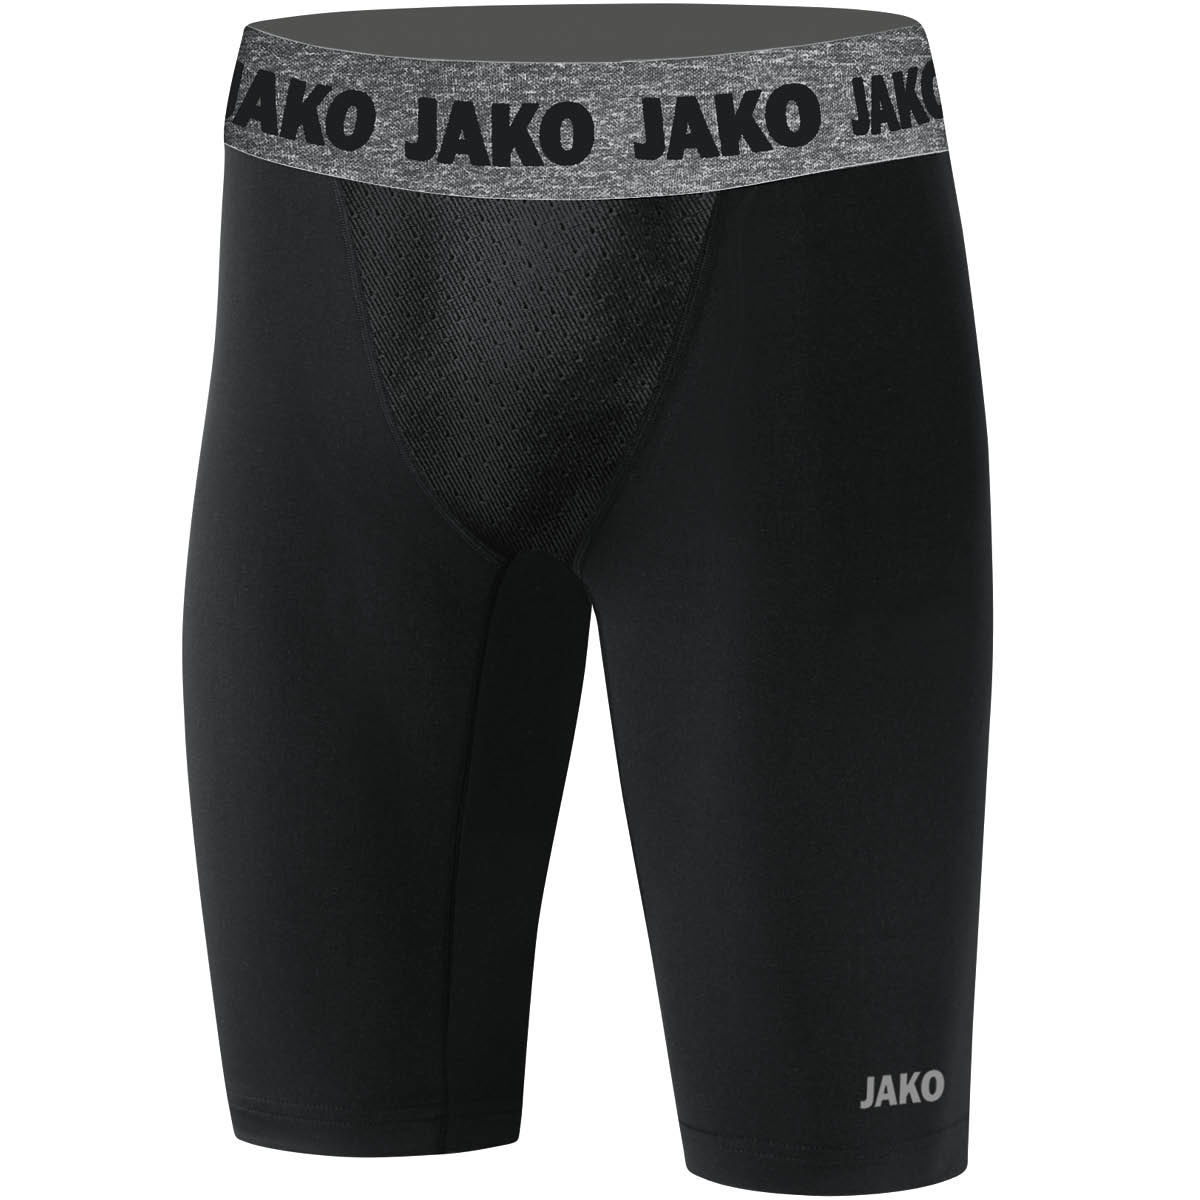 Afbeeldingen van Short tight compression